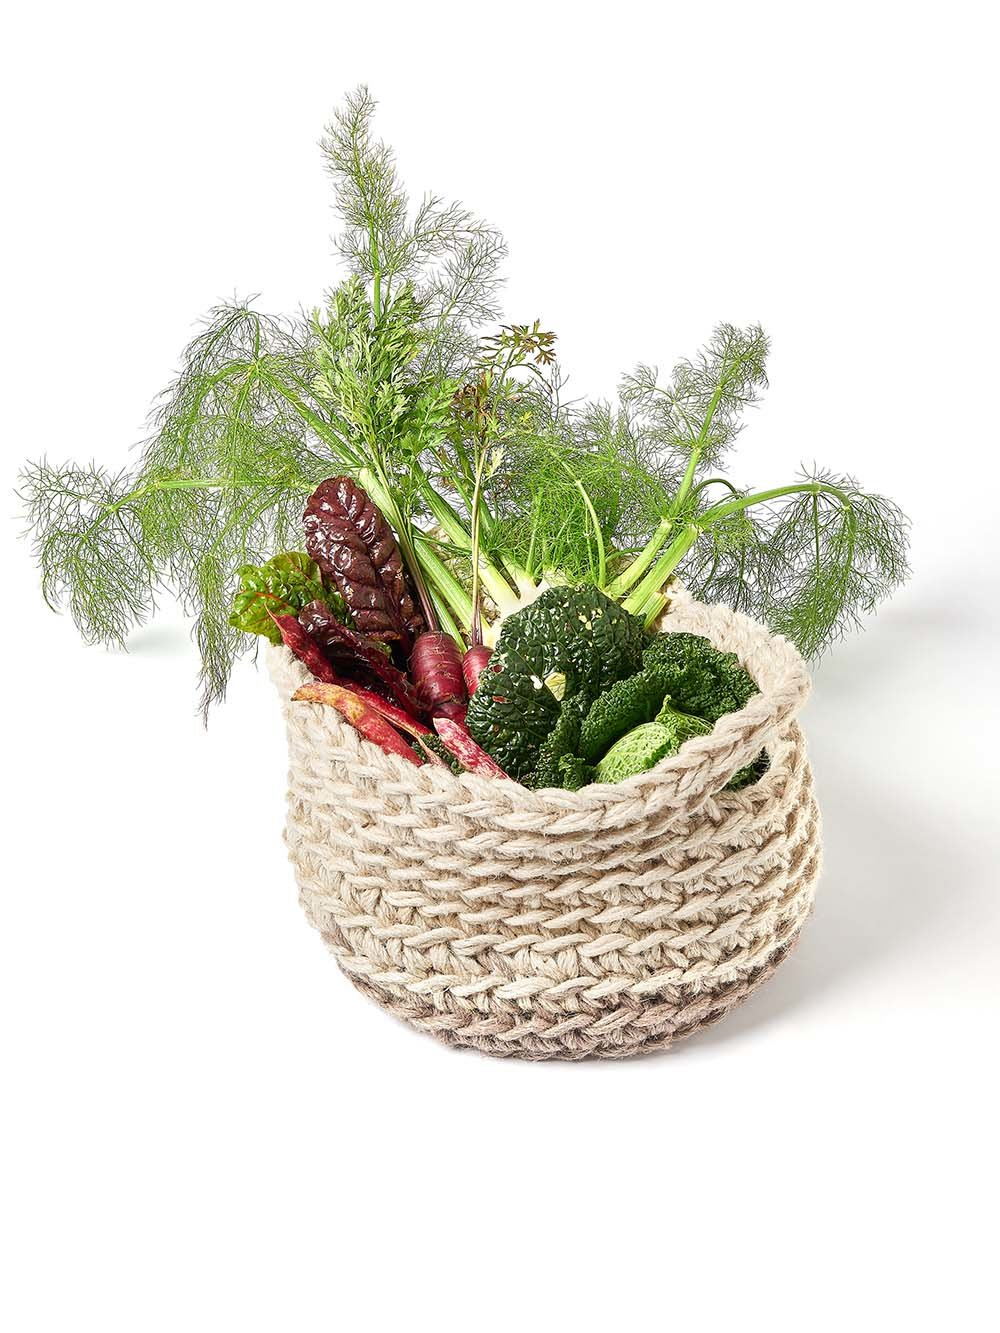 Handwoven trug for vegetables